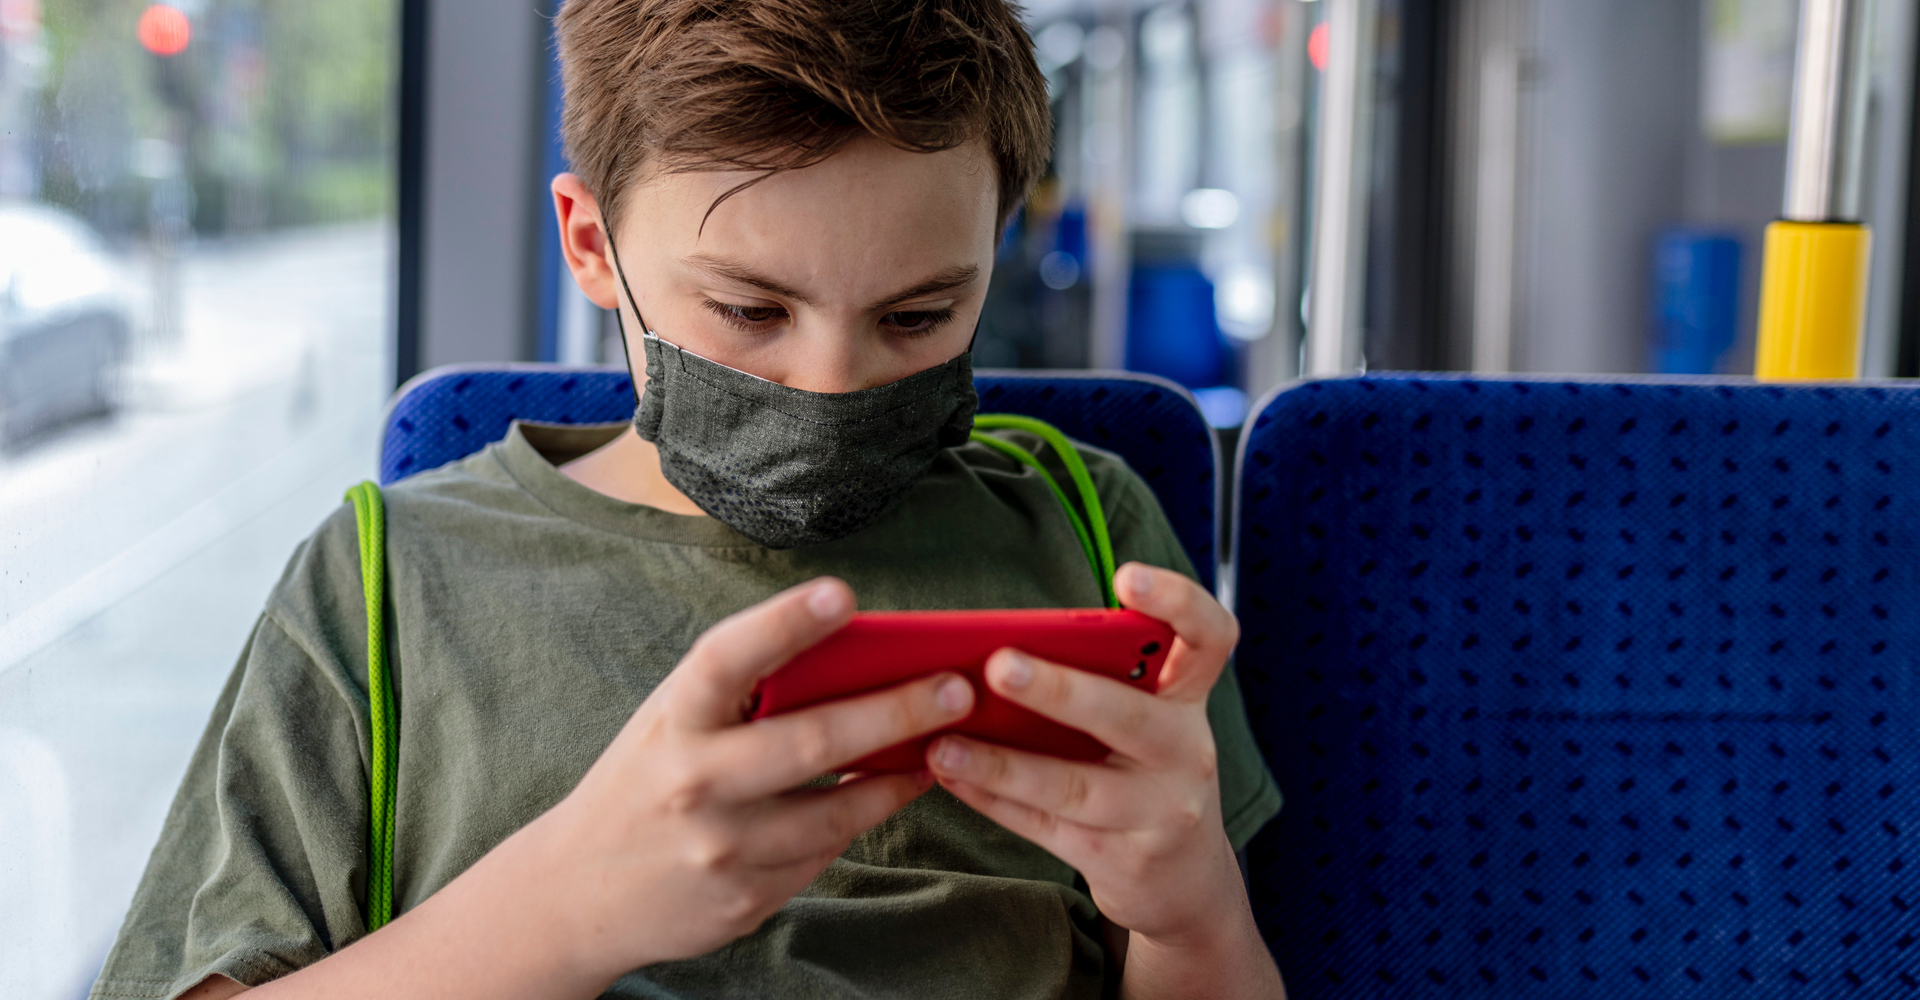 Unintended Risks Of Apple Child Protection Features | Avast